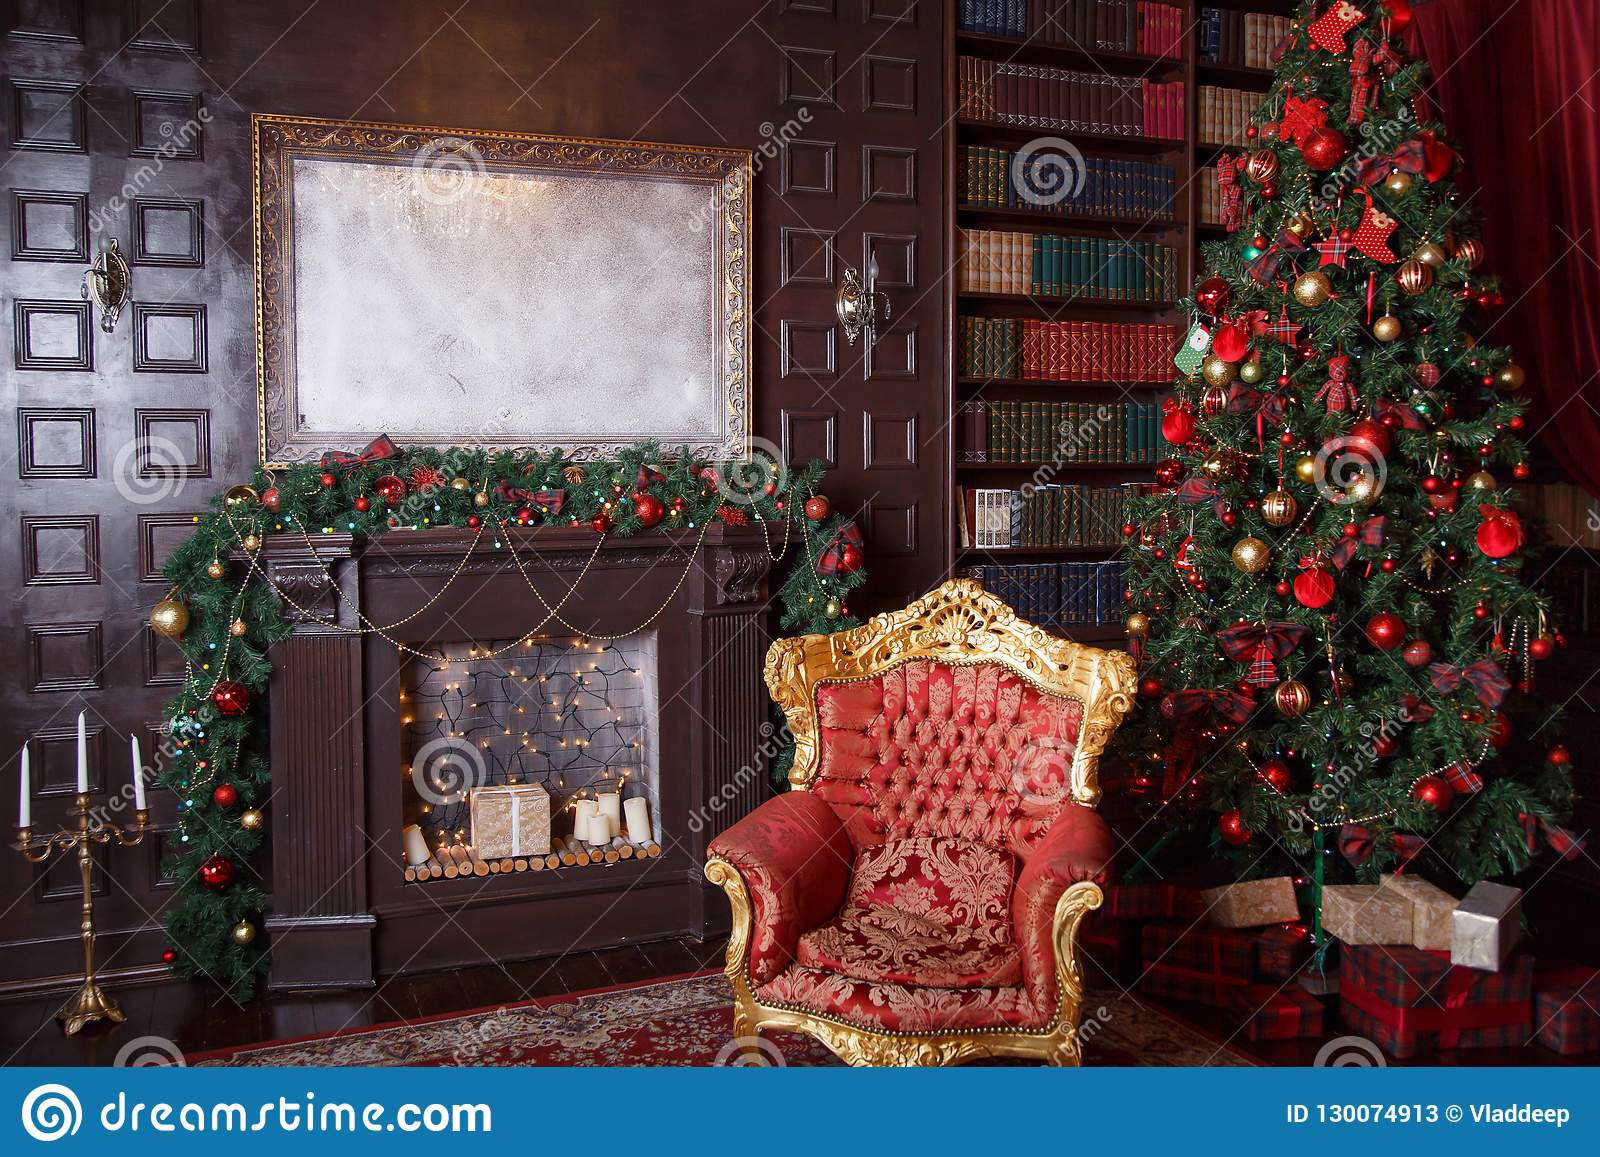 Christmas Decor In Royal Living Room With A Vintage Armchair